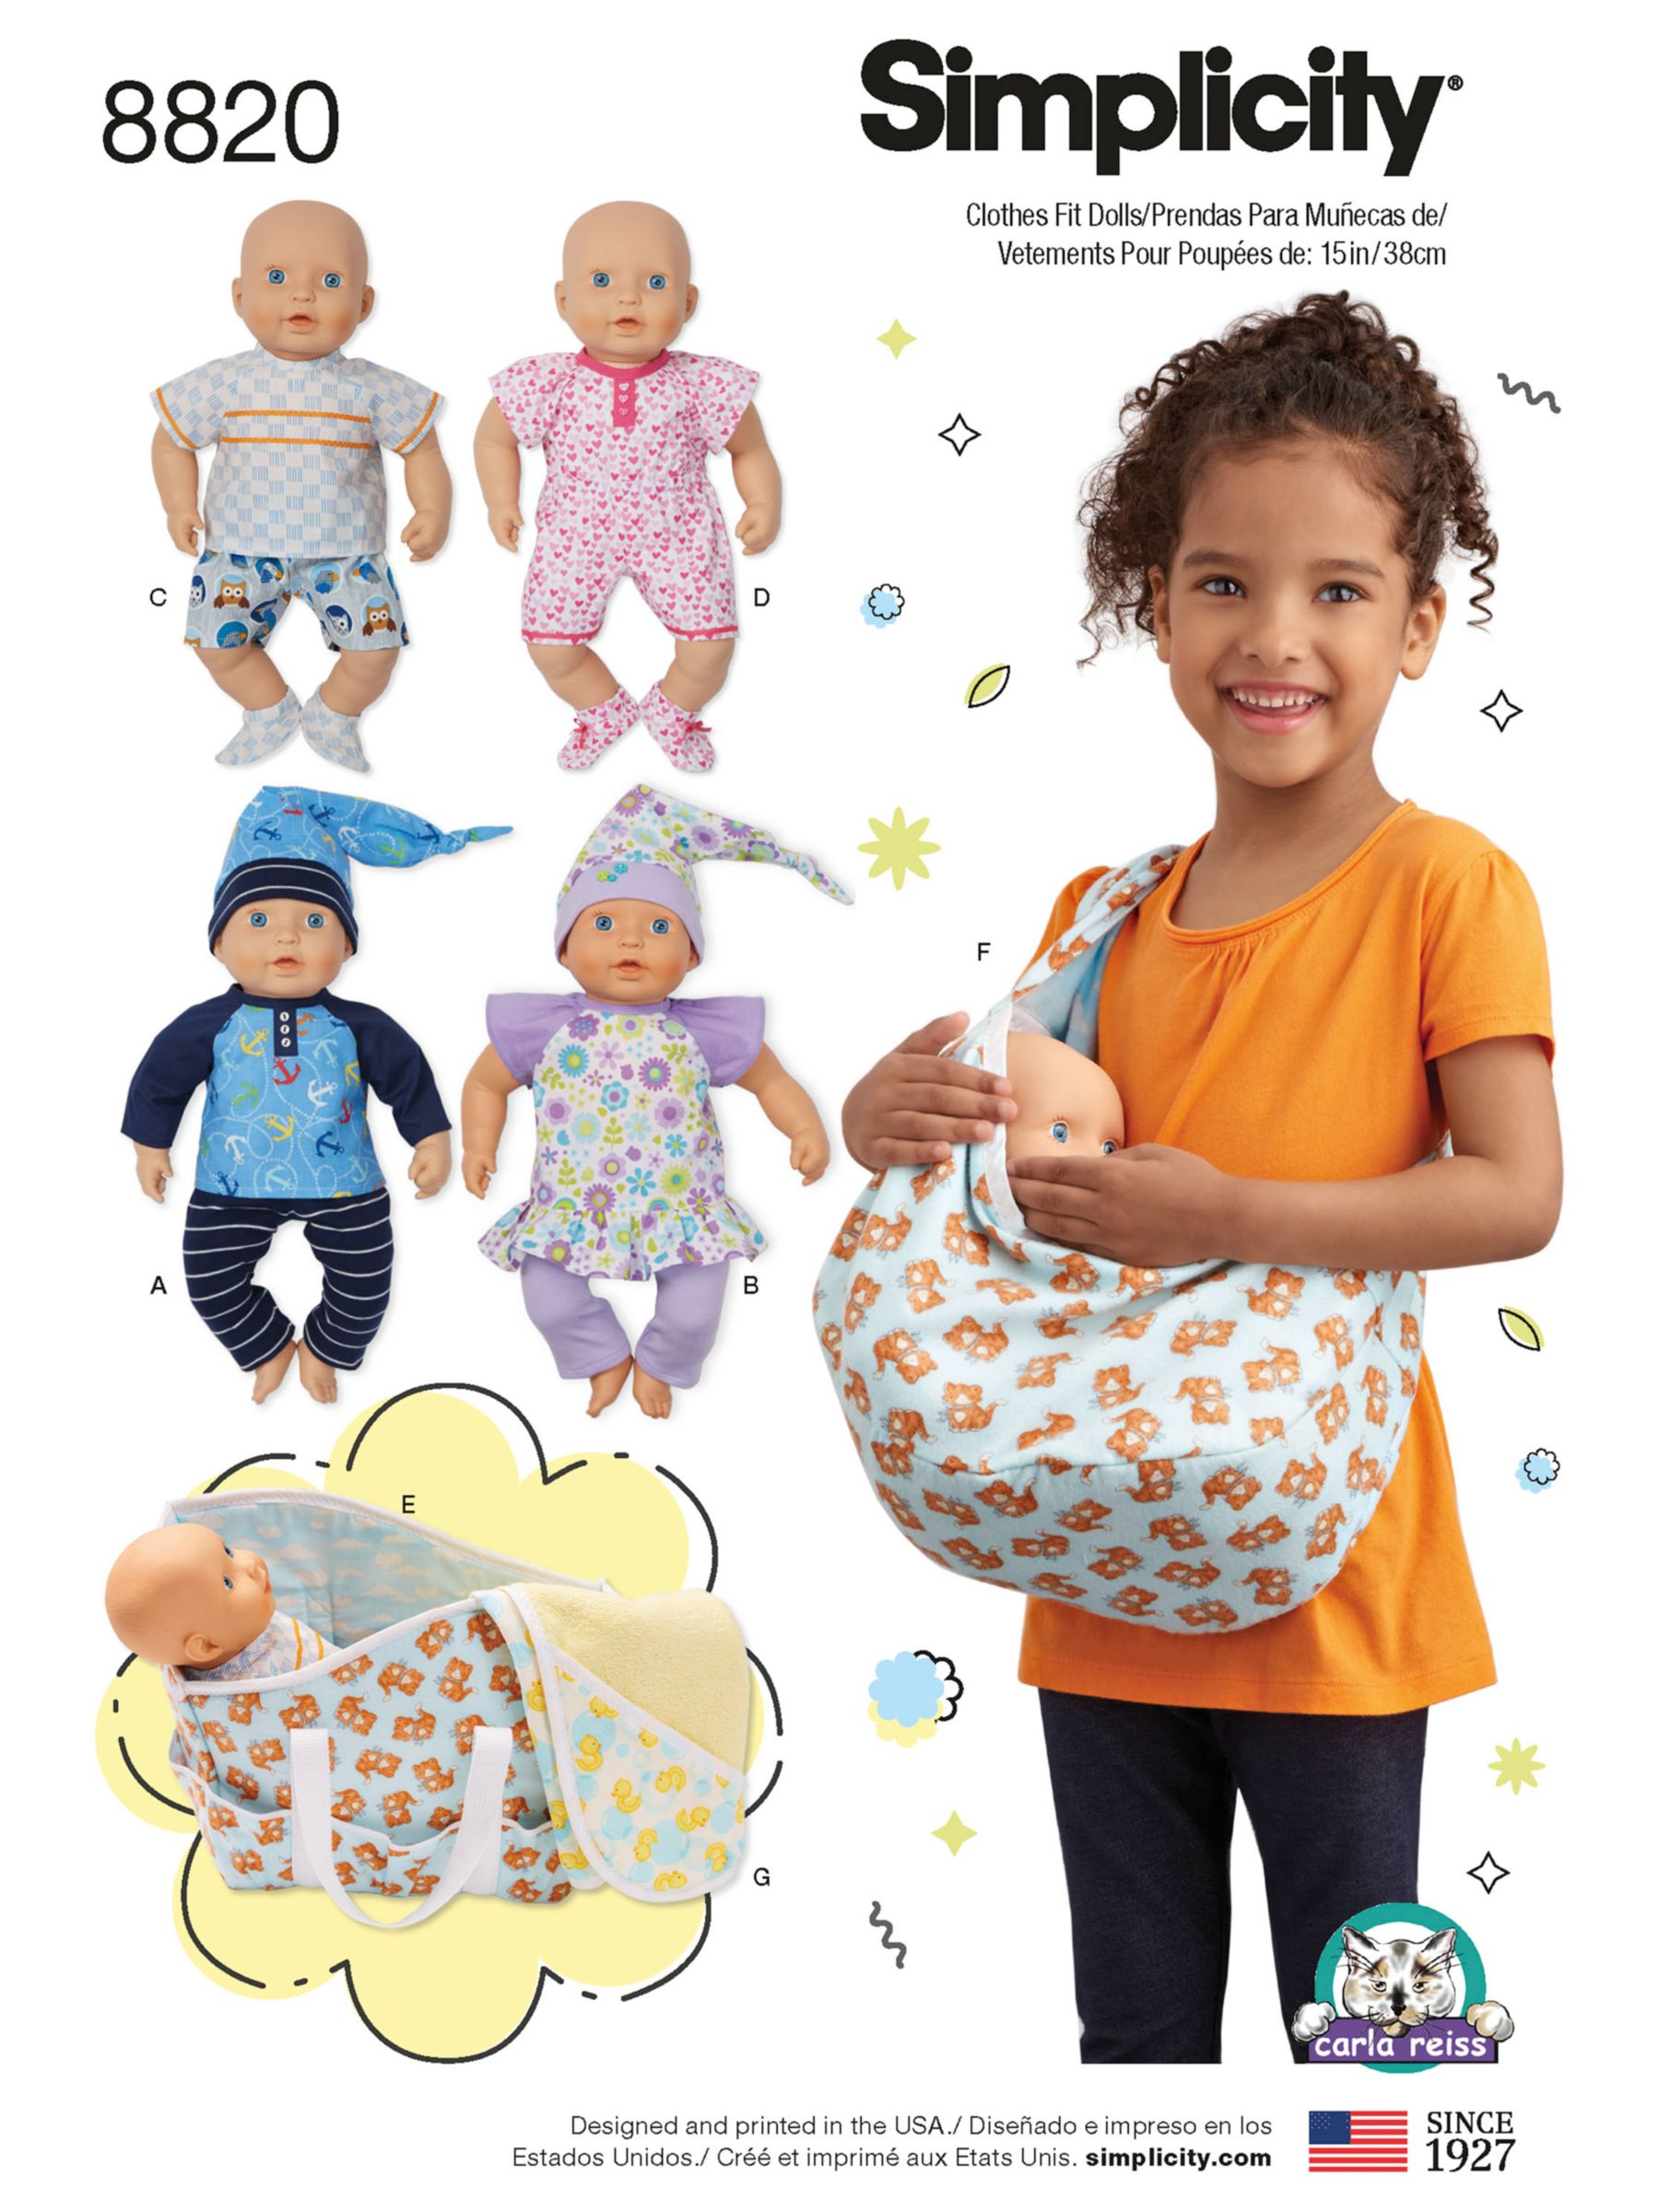 Simplicity Simplicity Children's Doll's Clothes and Accessories Sewing Pattern, 8820